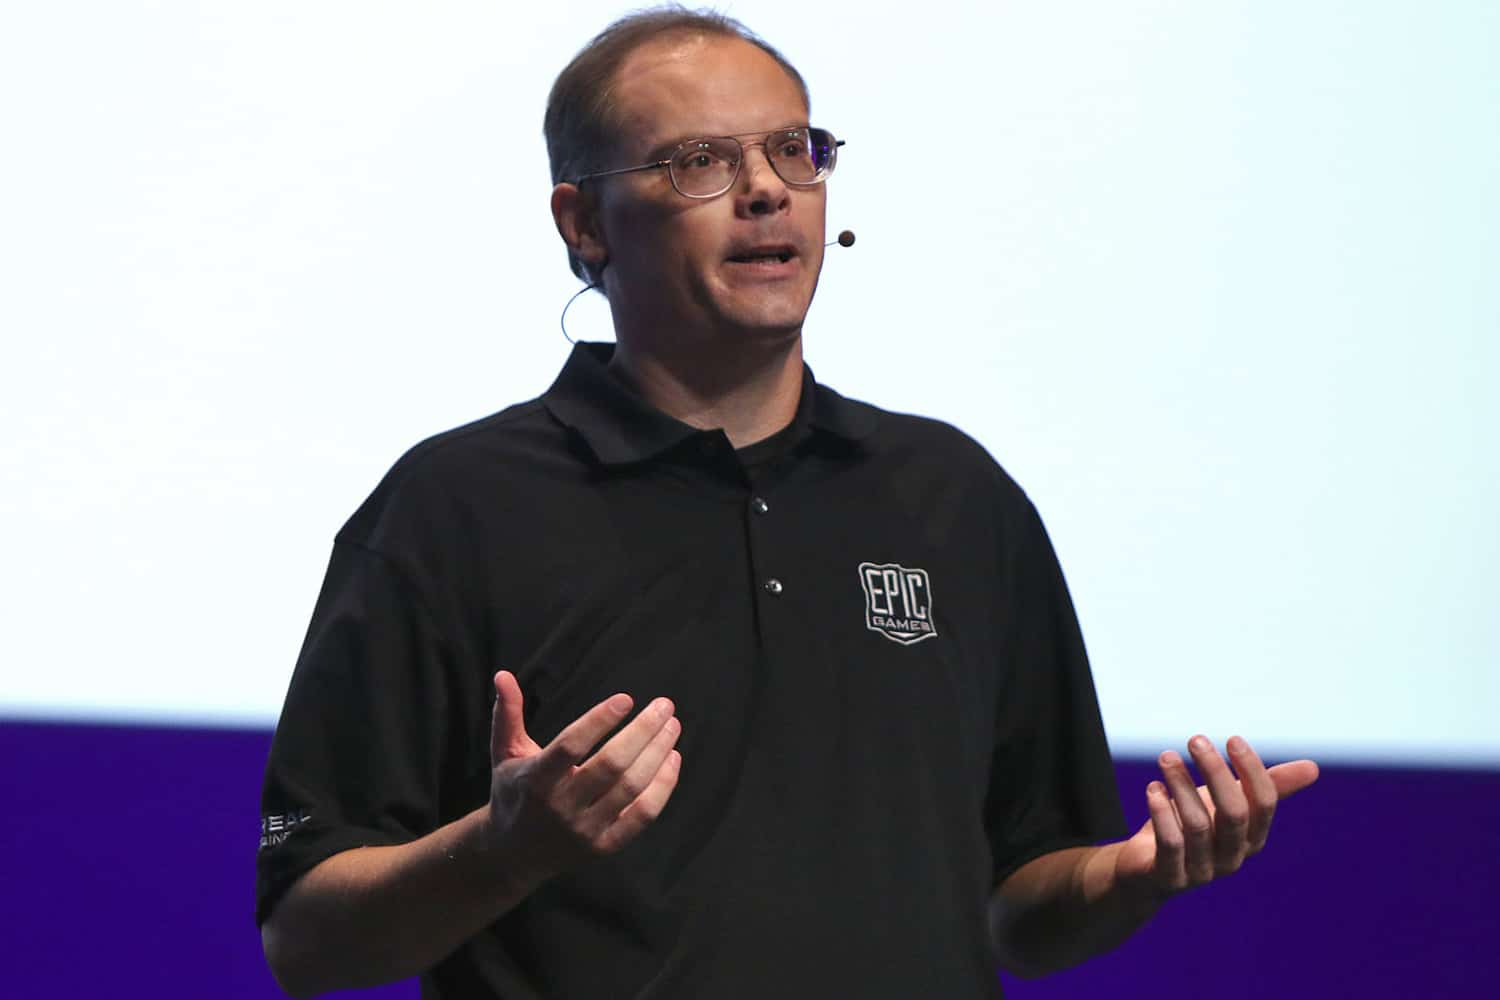 Tim Sweeney, da Epic Games